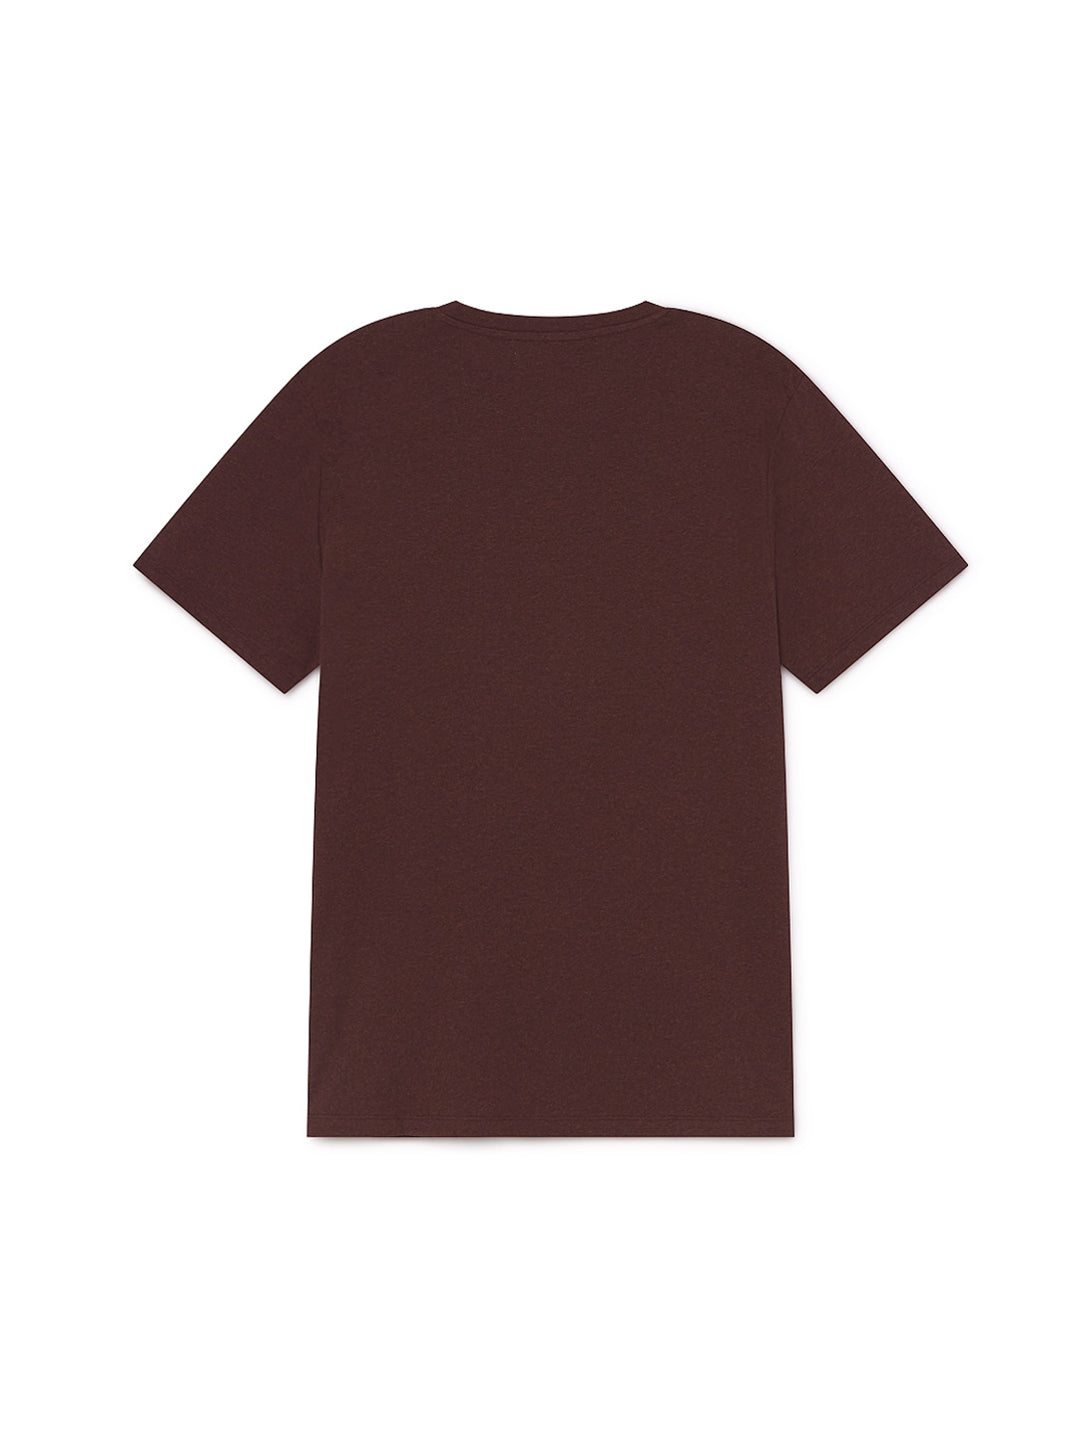 TWOTHIRDS Mens Tee: Graham - Burgundy back